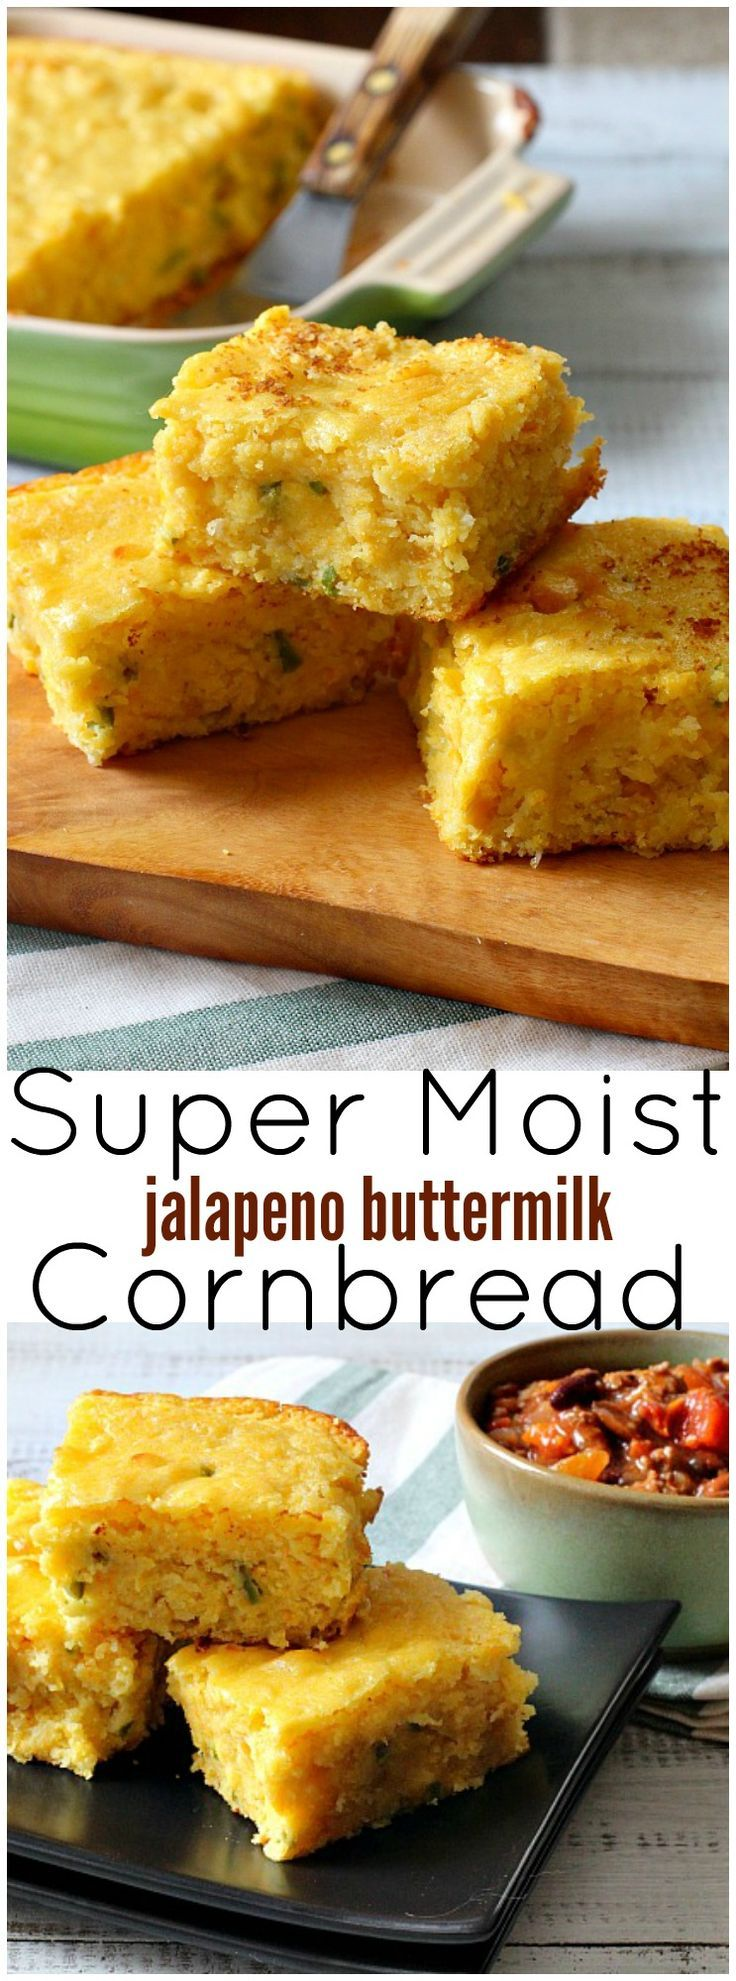 You'd almost swear there was pudding in this Super Moist Cornbread recipe. Using creamed corn and Munster cheese is one of the secrets to this homemade buttermilk cornbread recipe. Our family favorite. via @lannisam